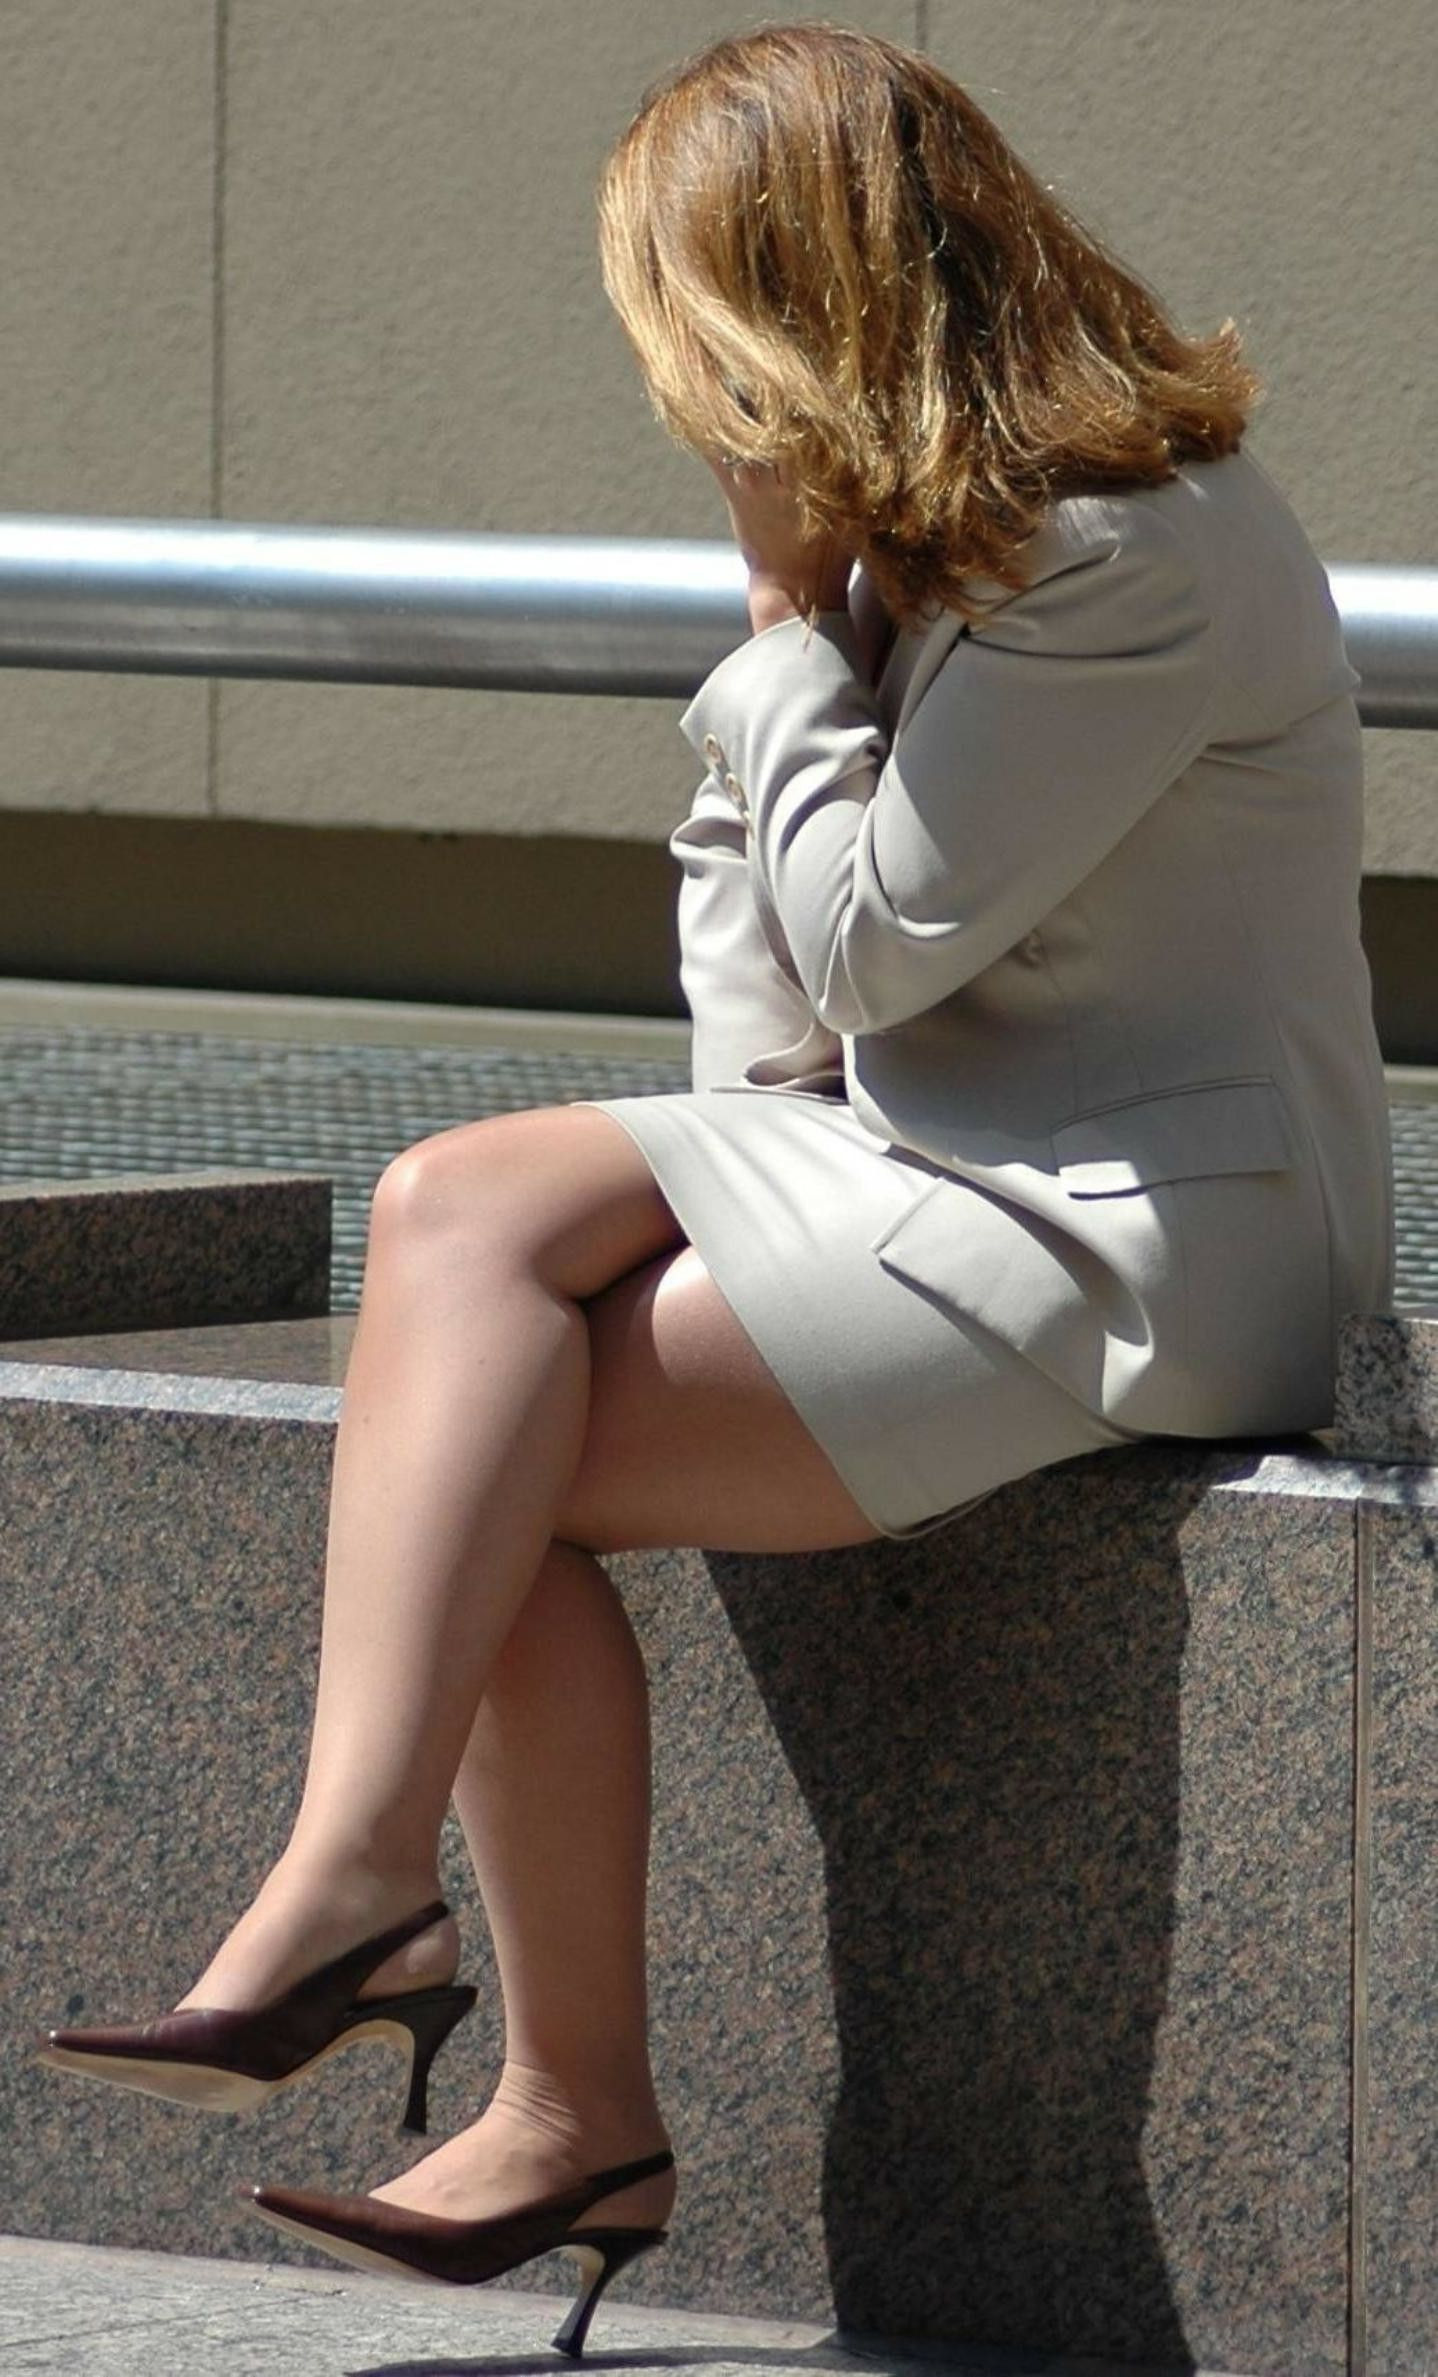 Think, that Women wearing pantyhose at work sorry